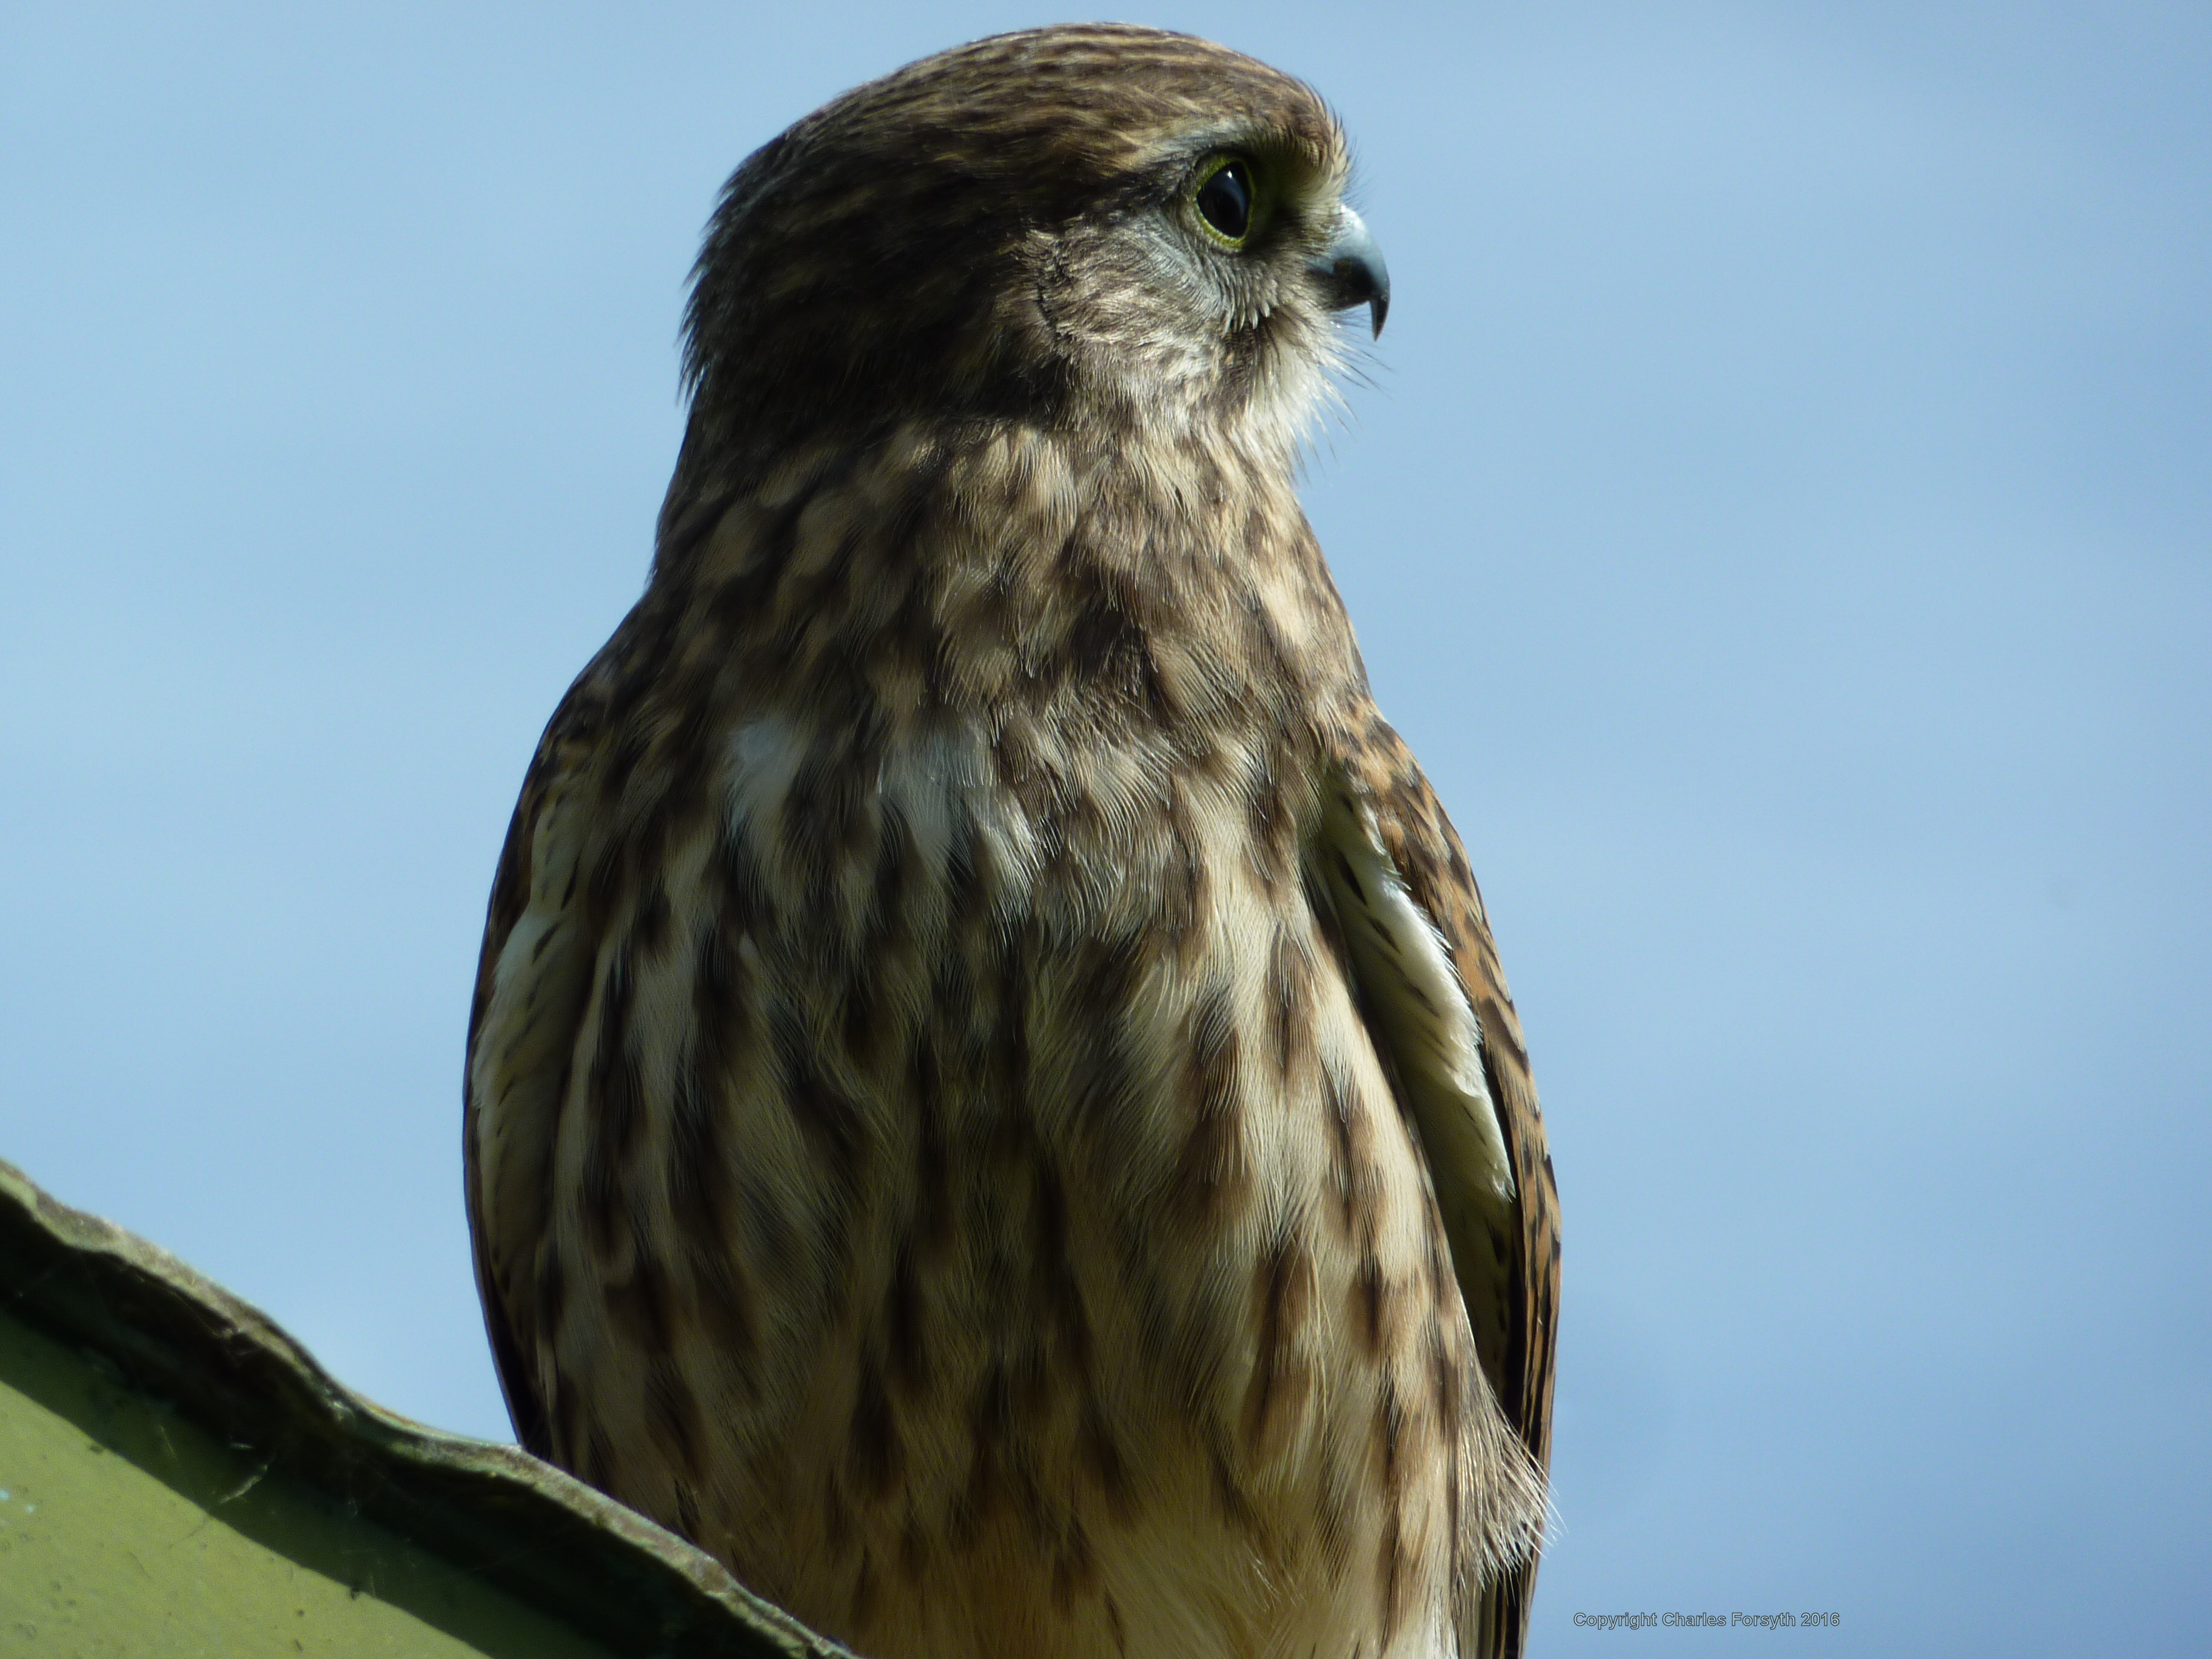 Kestrel by Charles Forsyth - Copyright 2016